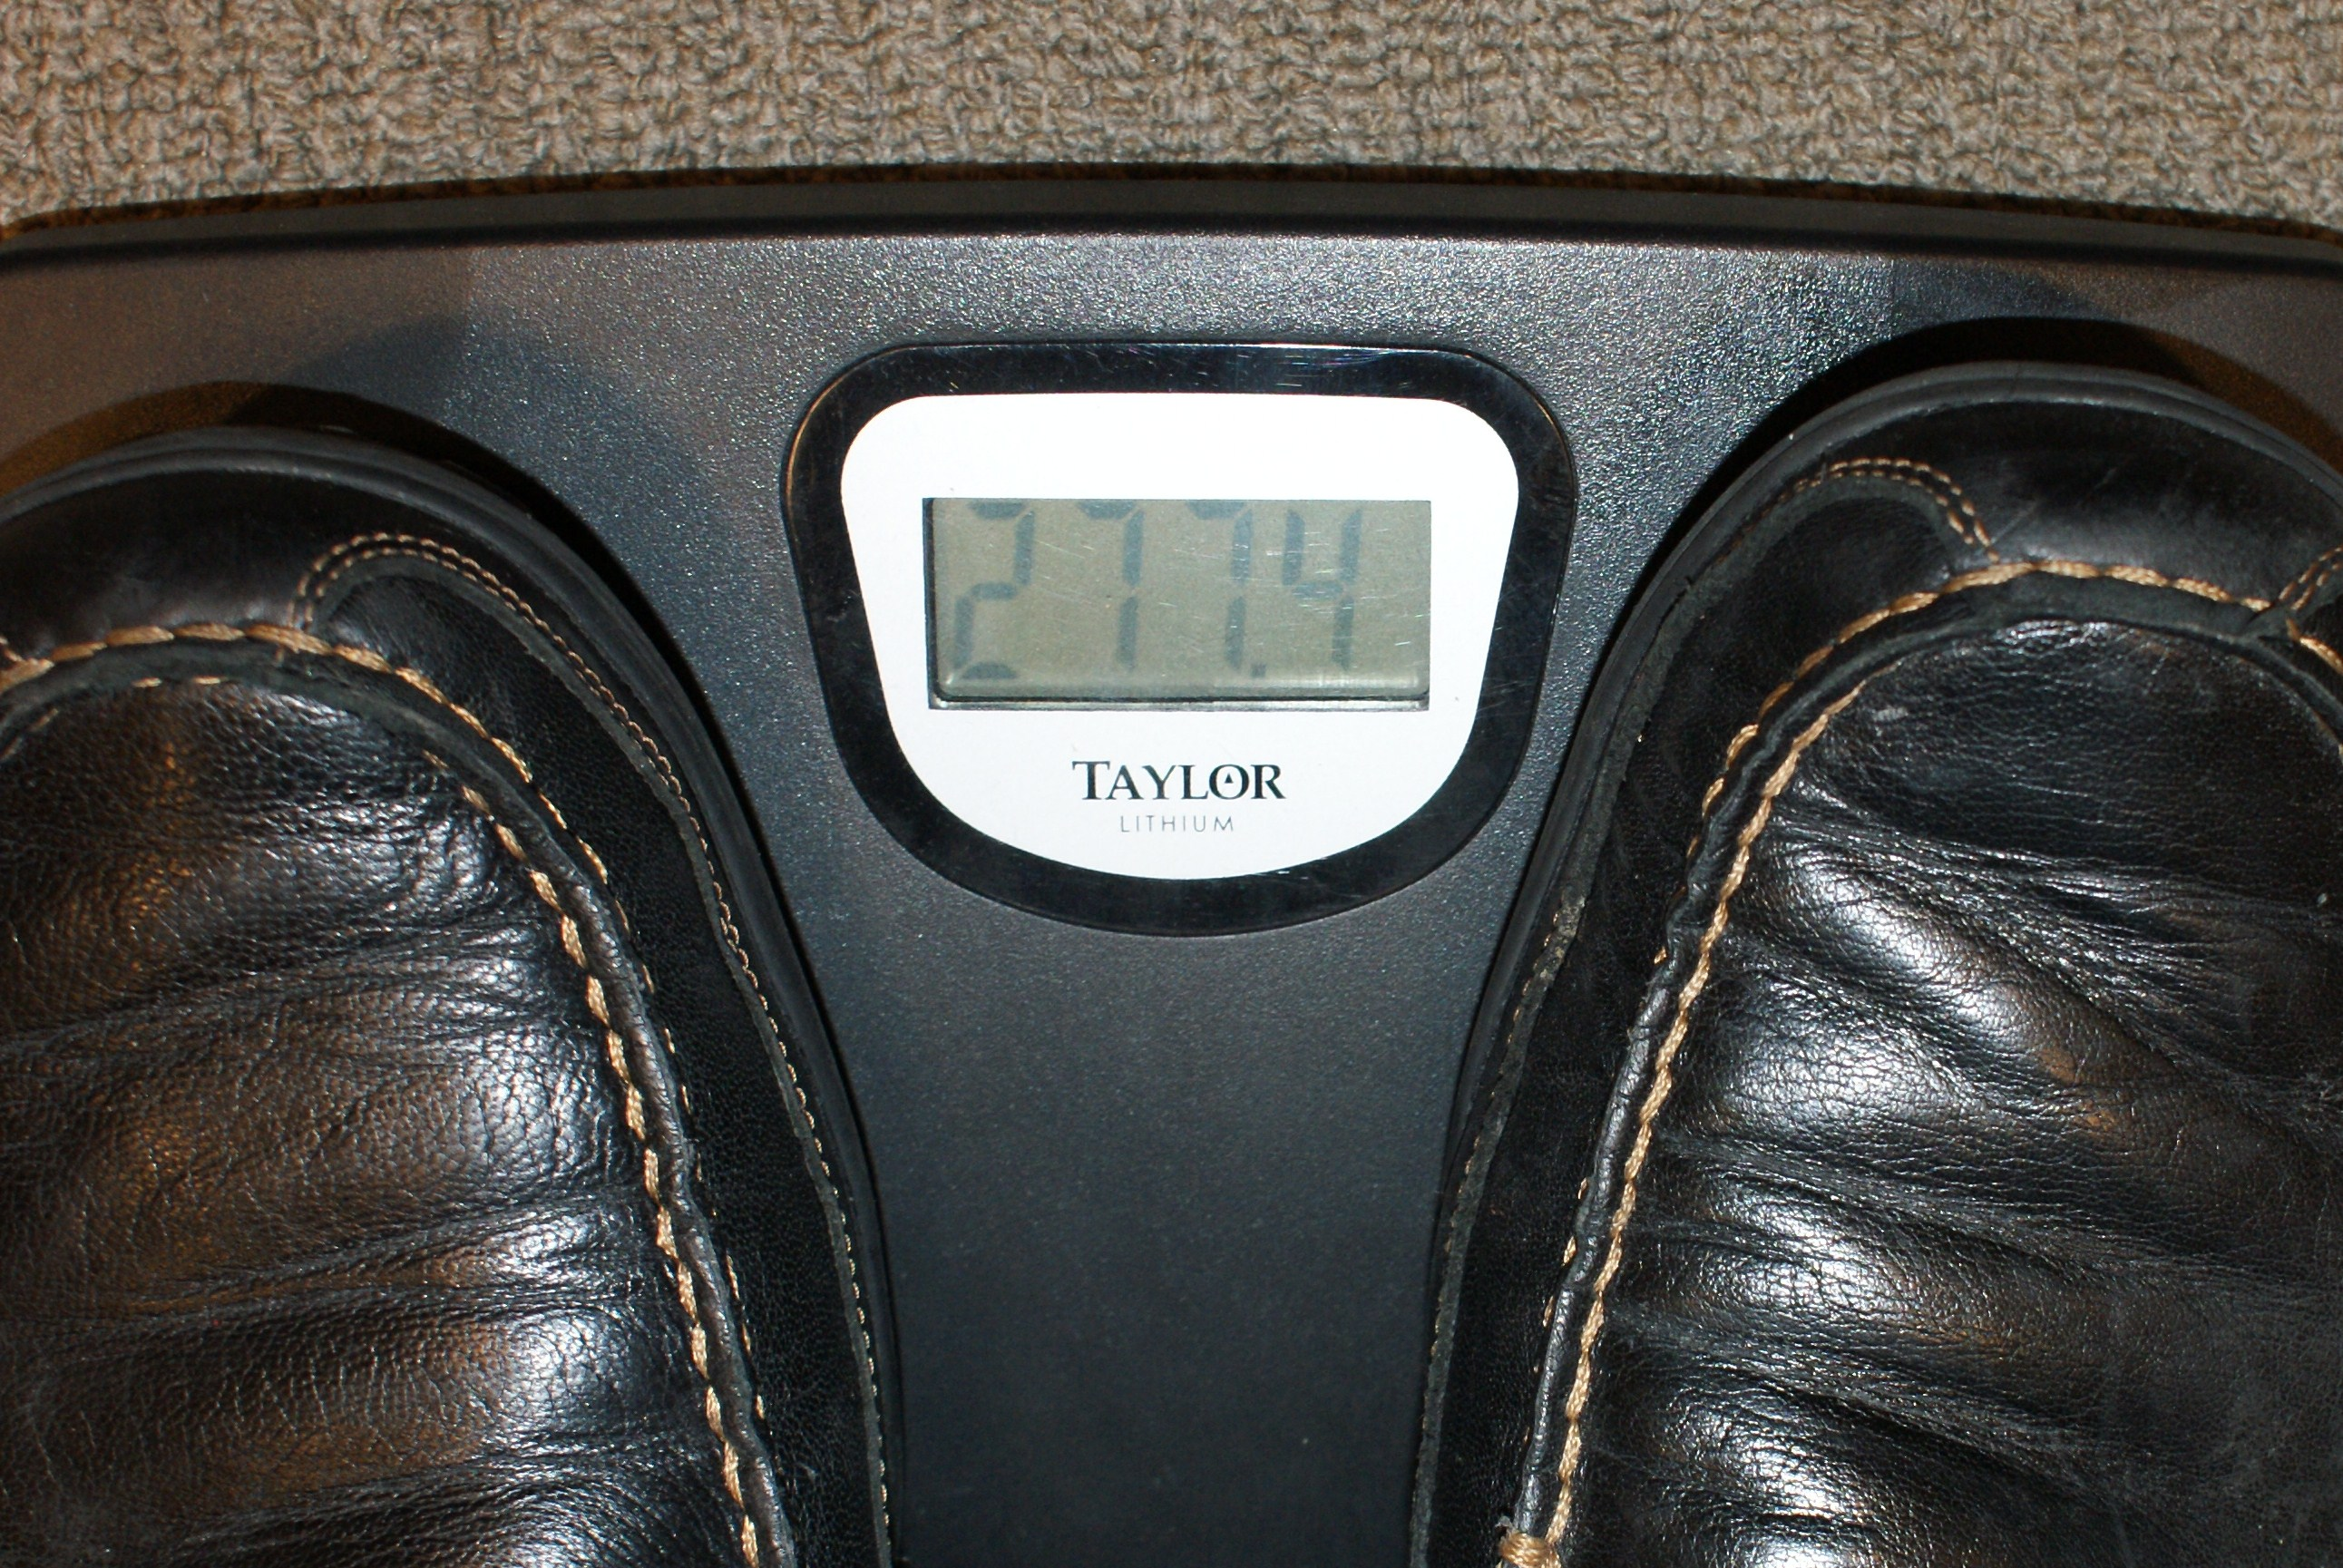 Chef's Diet Scale (Before)